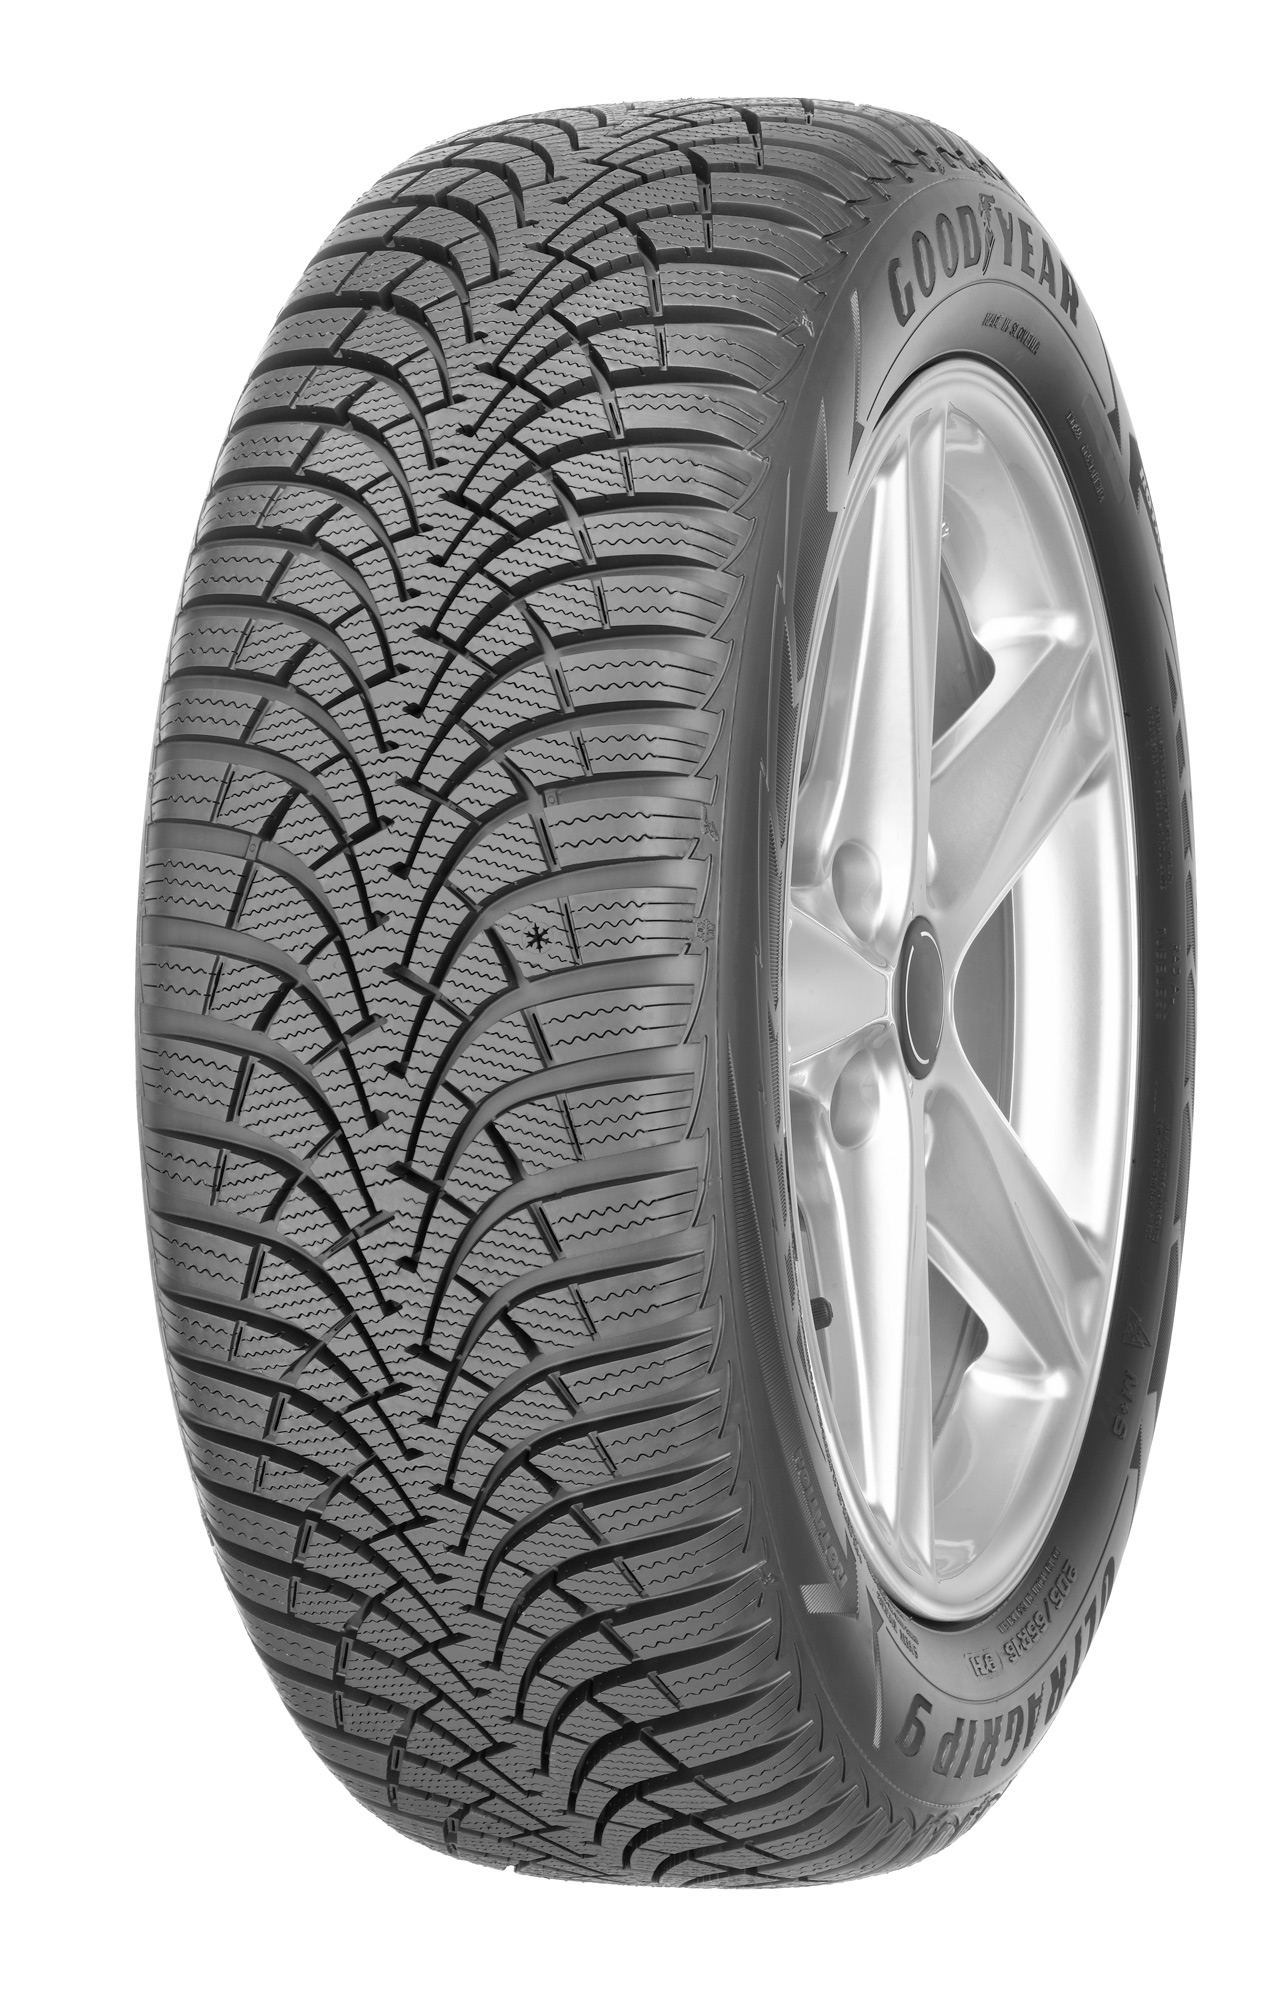 Anvelopa iarna GOODYEAR UG-9 XL 185/60 R15 88T